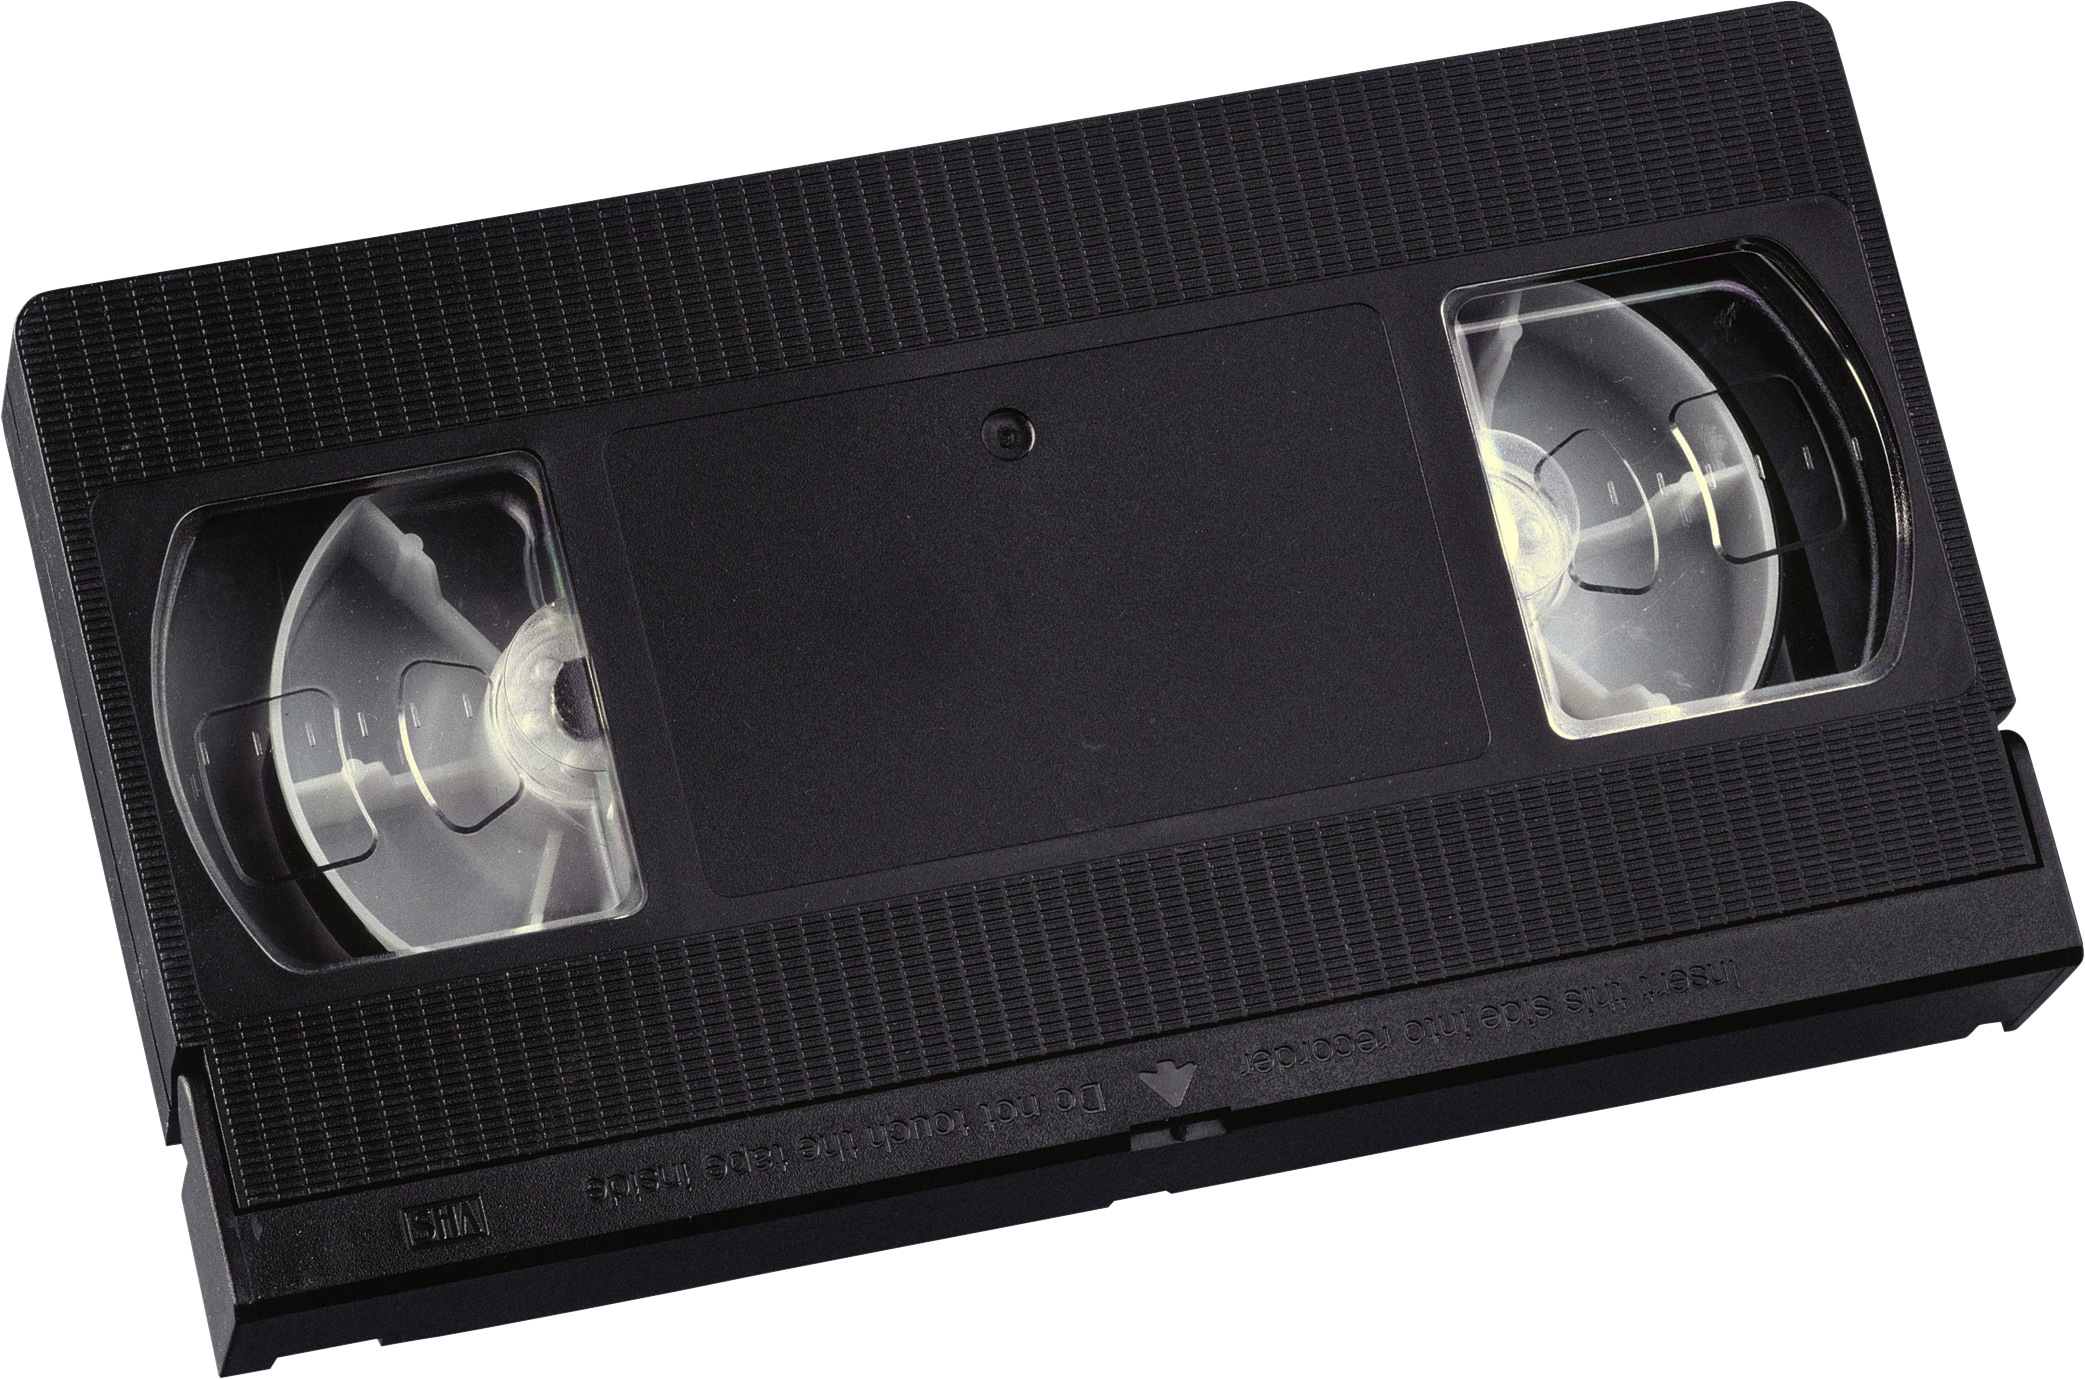 Vcrs Automotive Magnetic Vhs Tape Exterior Light PNG Image